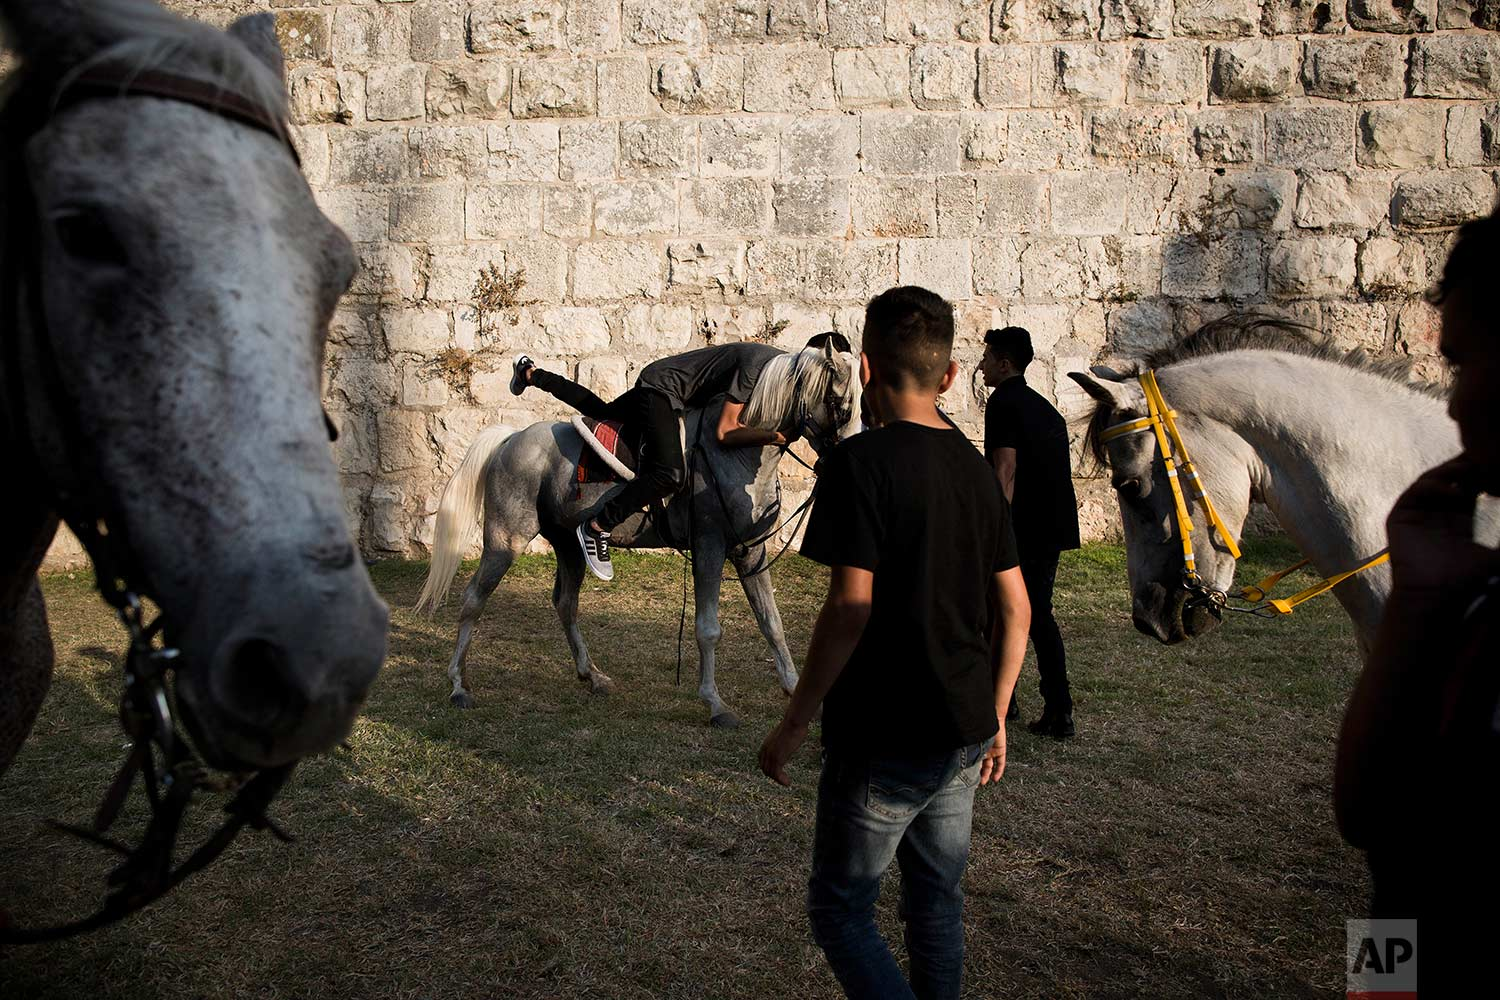 In this Tuesday, June 27, 2017 photo, Palestinians ride on horses during the Eid al-Fitr holiday outside Damascus Gate in Jerusalem. (AP Photo/Oded Balilty)